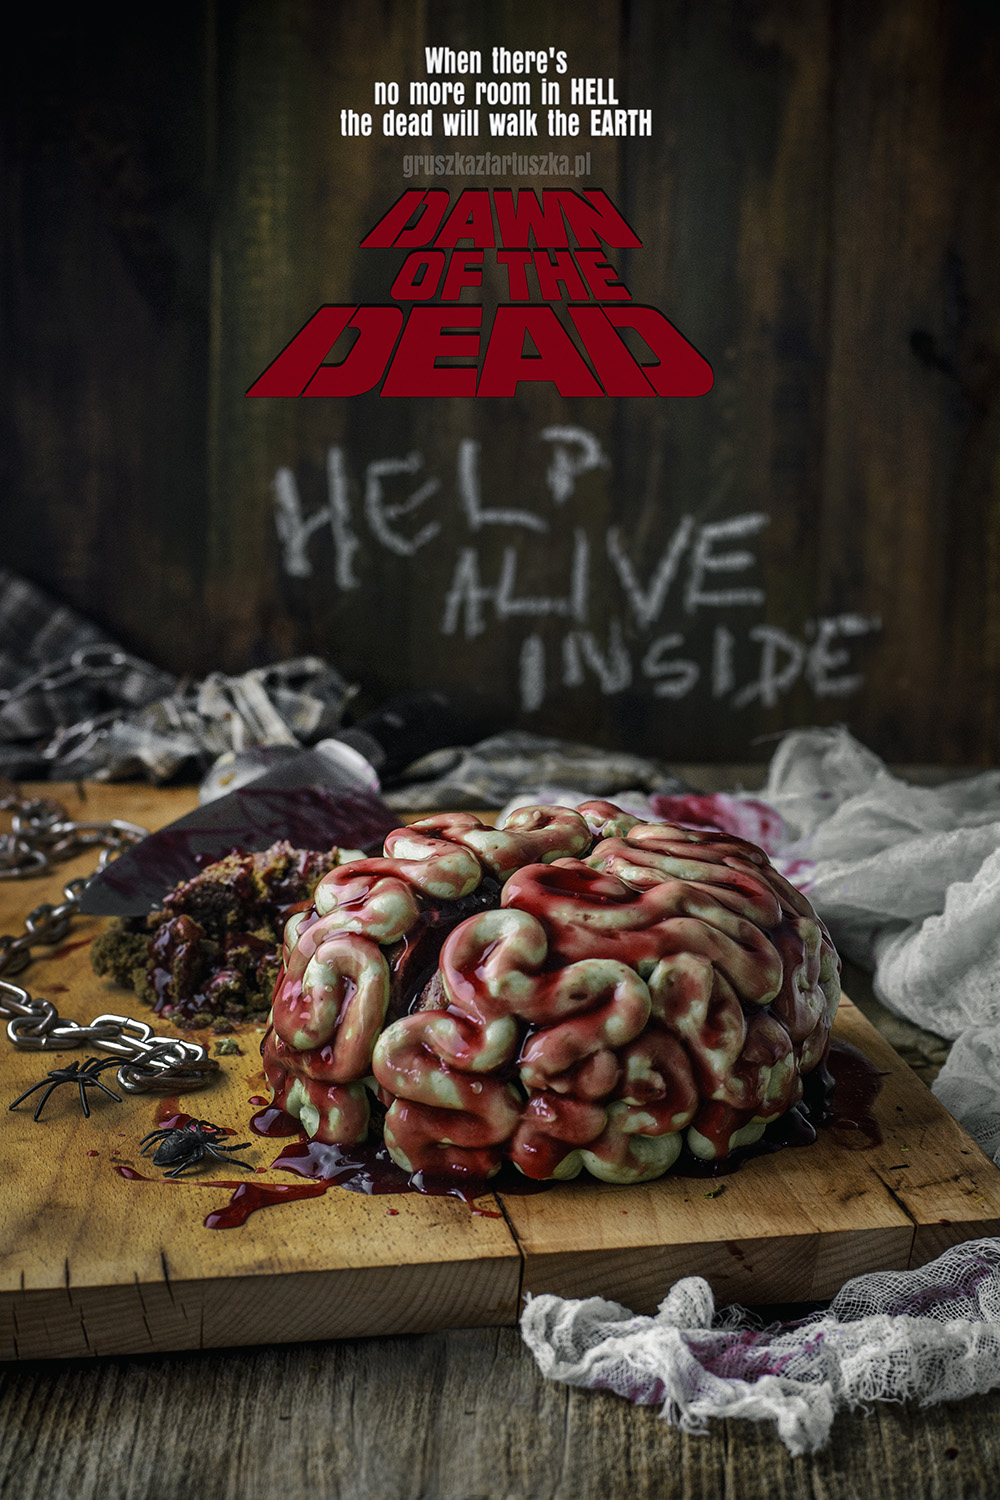 dawn of the dead zombie brain cake